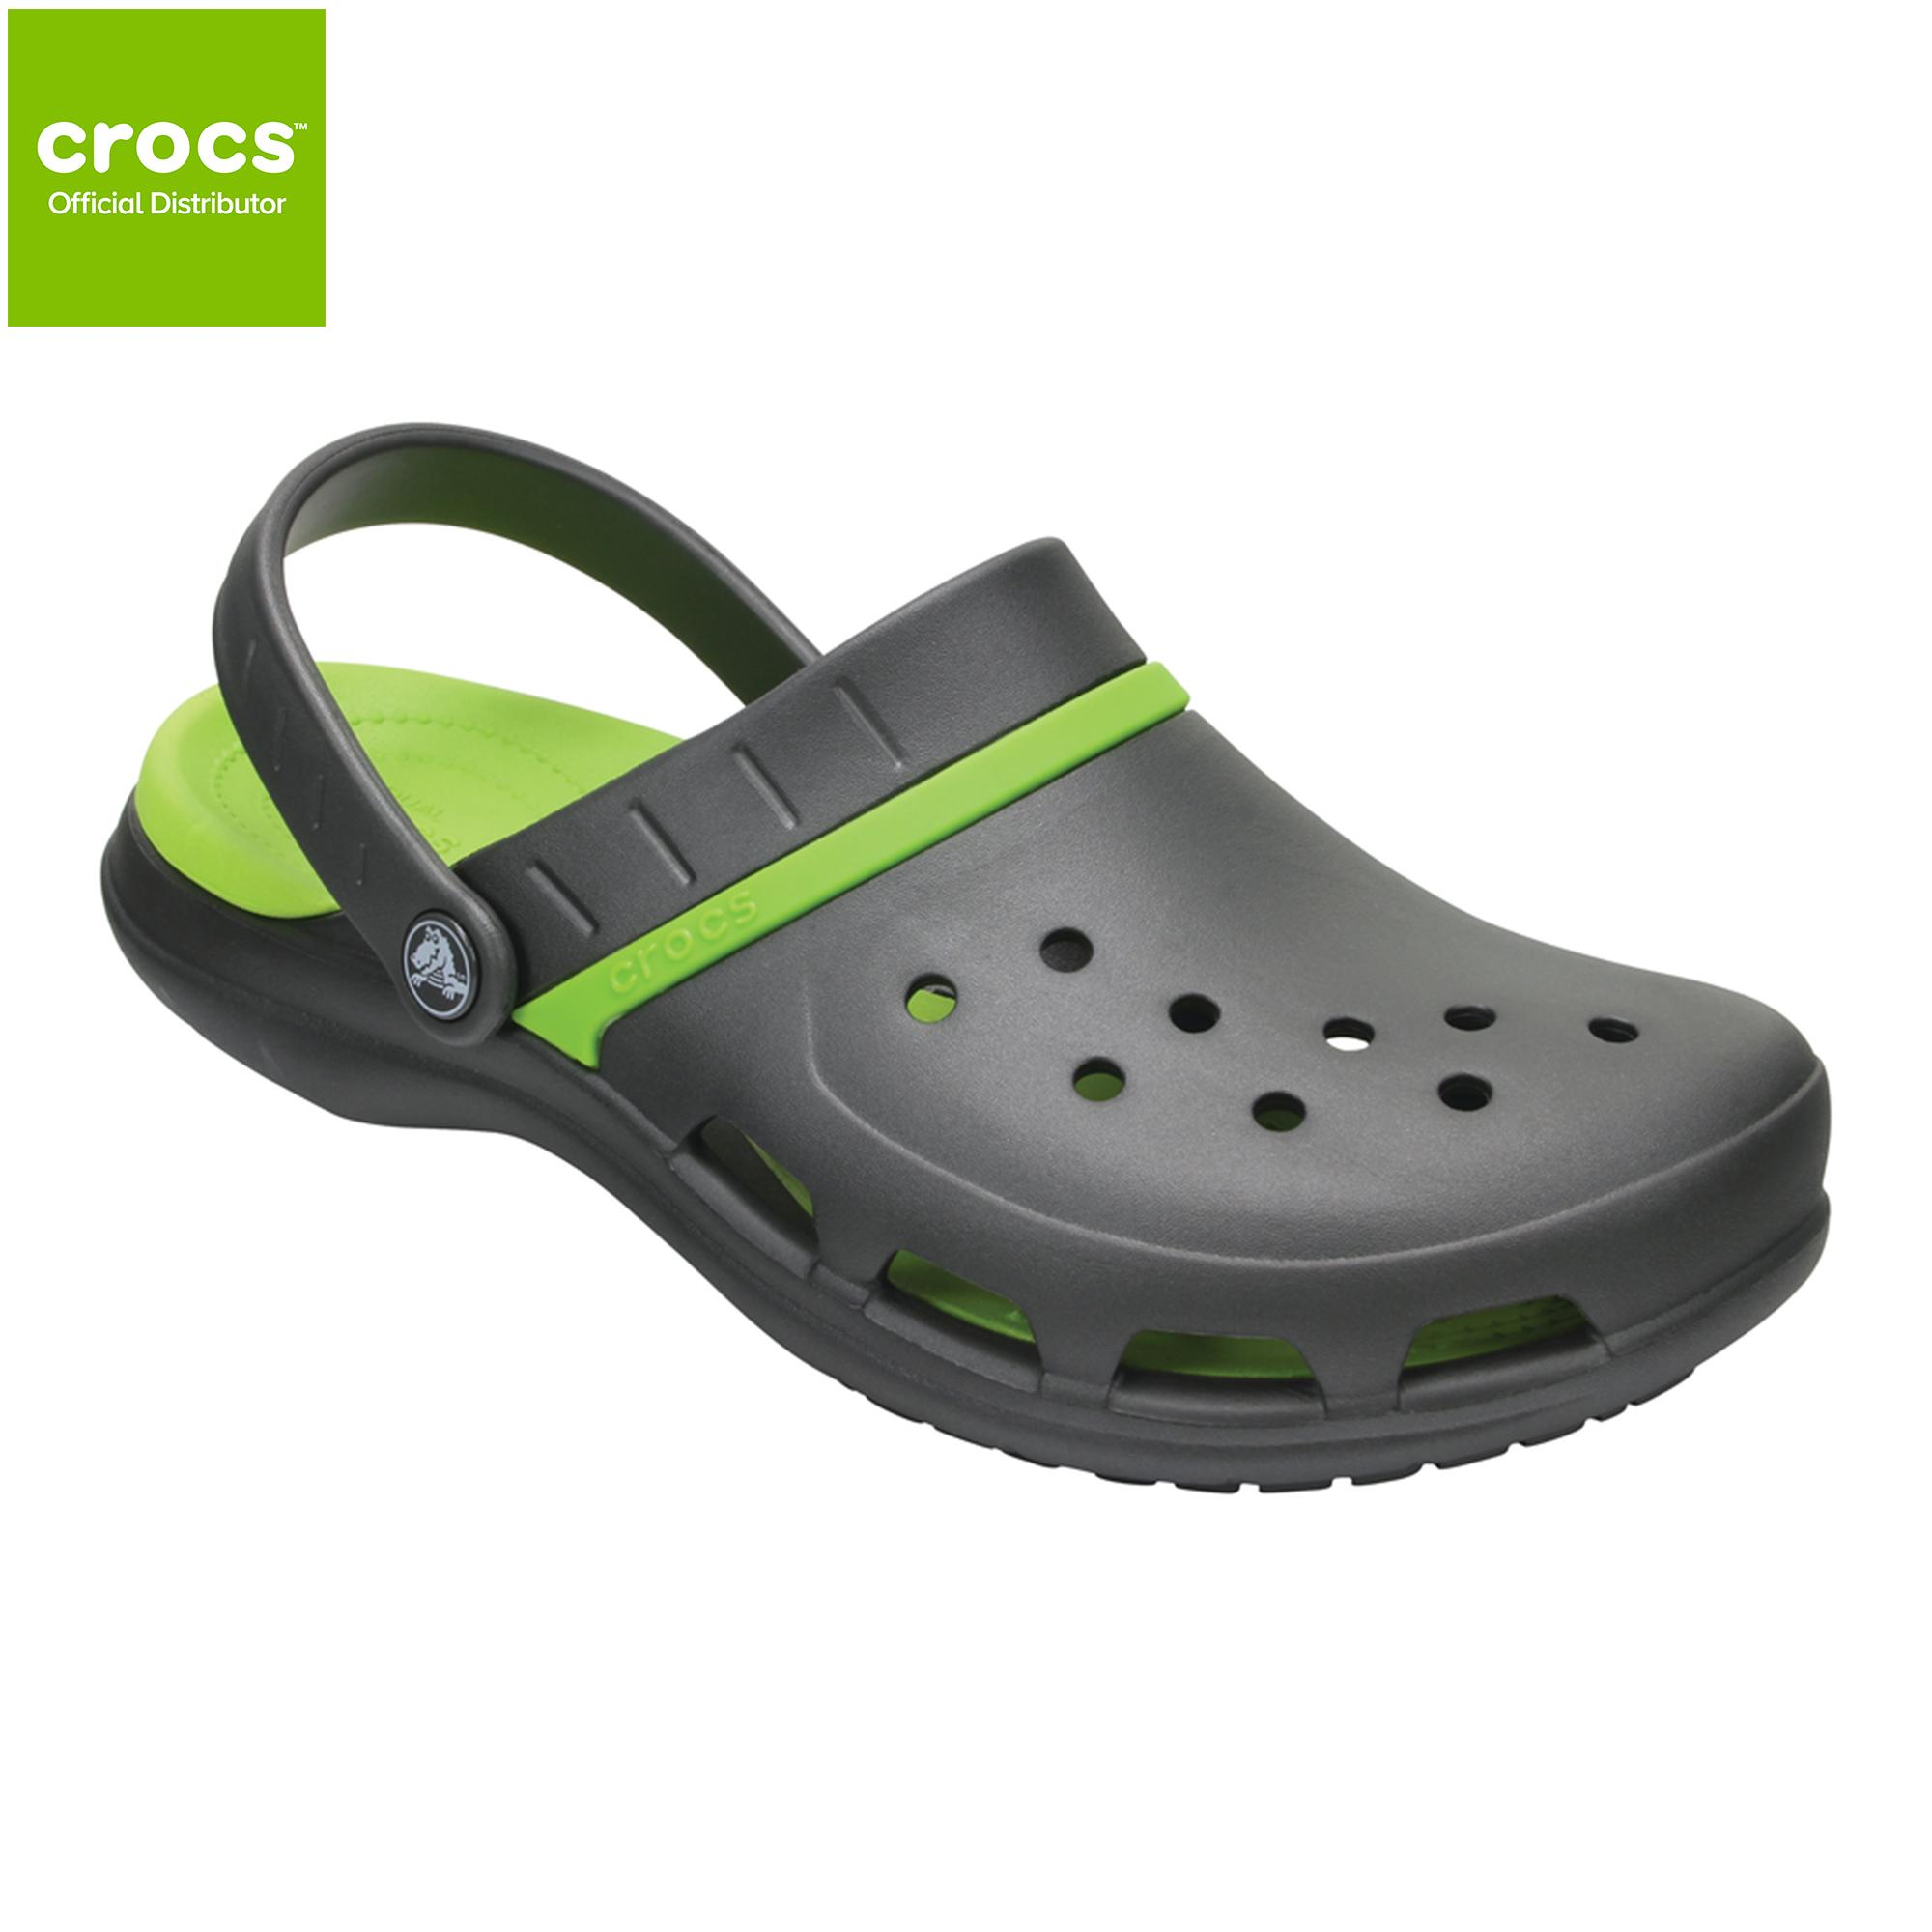 5734efe97facef Crocs Philippines  Crocs price list - Crocs Flats